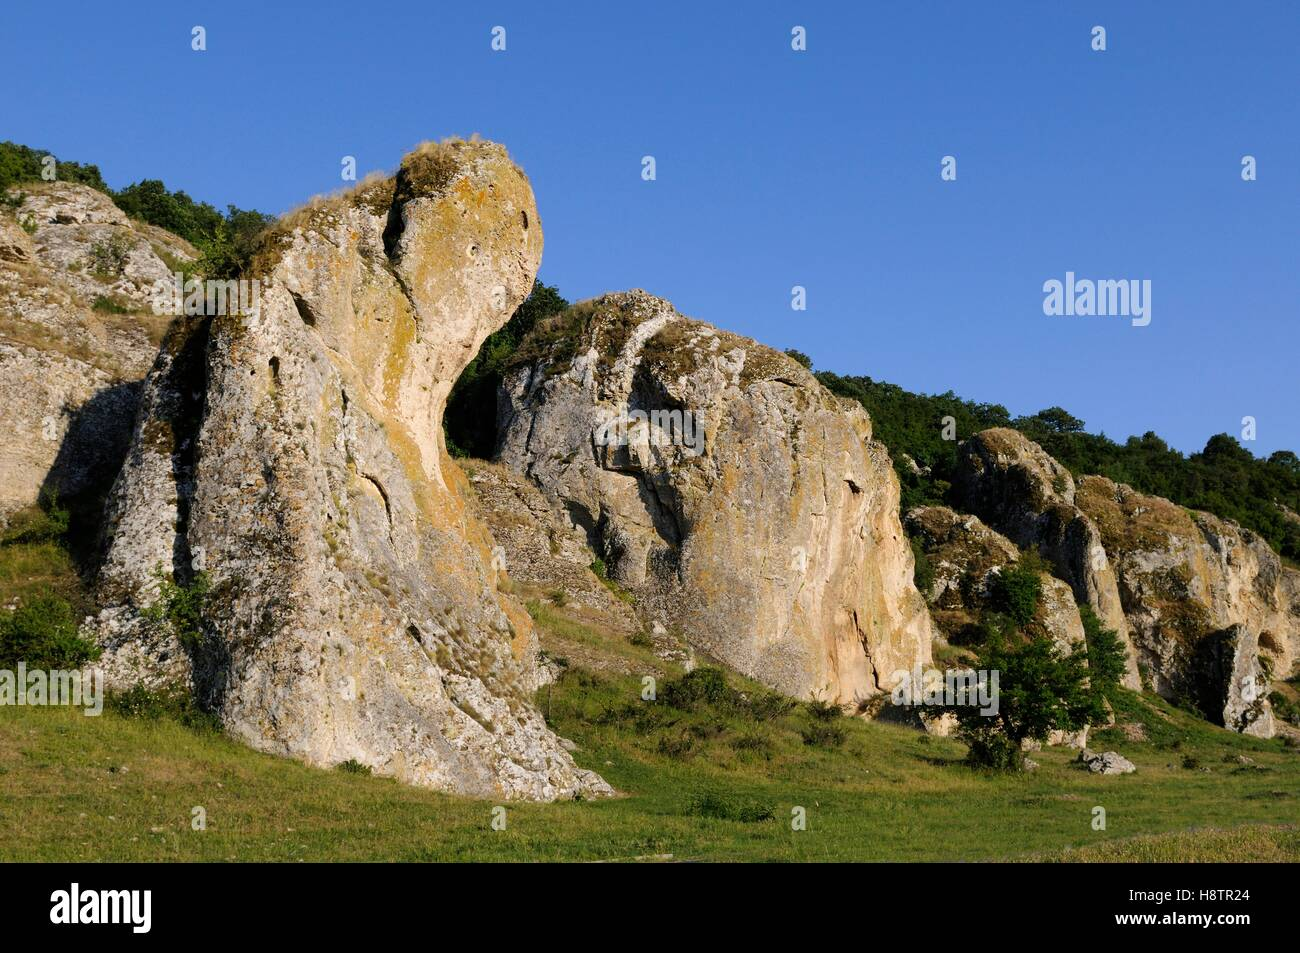 Mesozoic Lime rocks,the oldest in Europe, Geological Reserve Cheile Dobrogei, Danube Delta, Romania - Stock Image